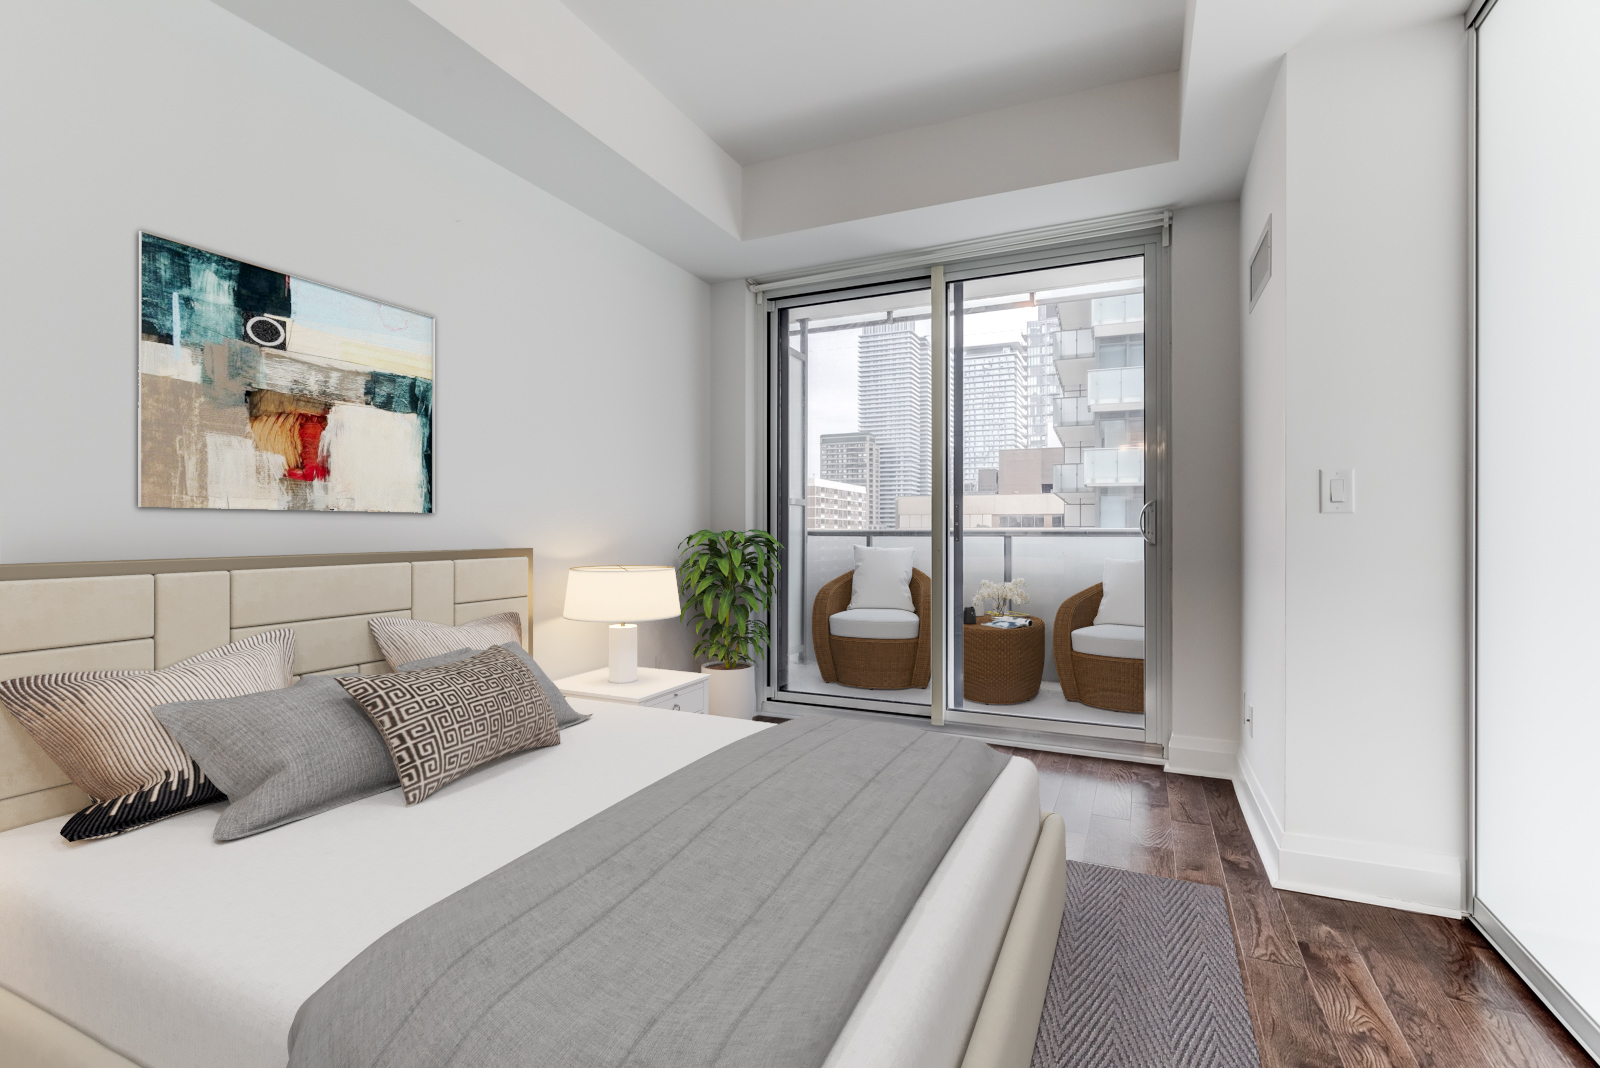 Unit 1502 master bedroom, virtually staged with bed and pillows and art.